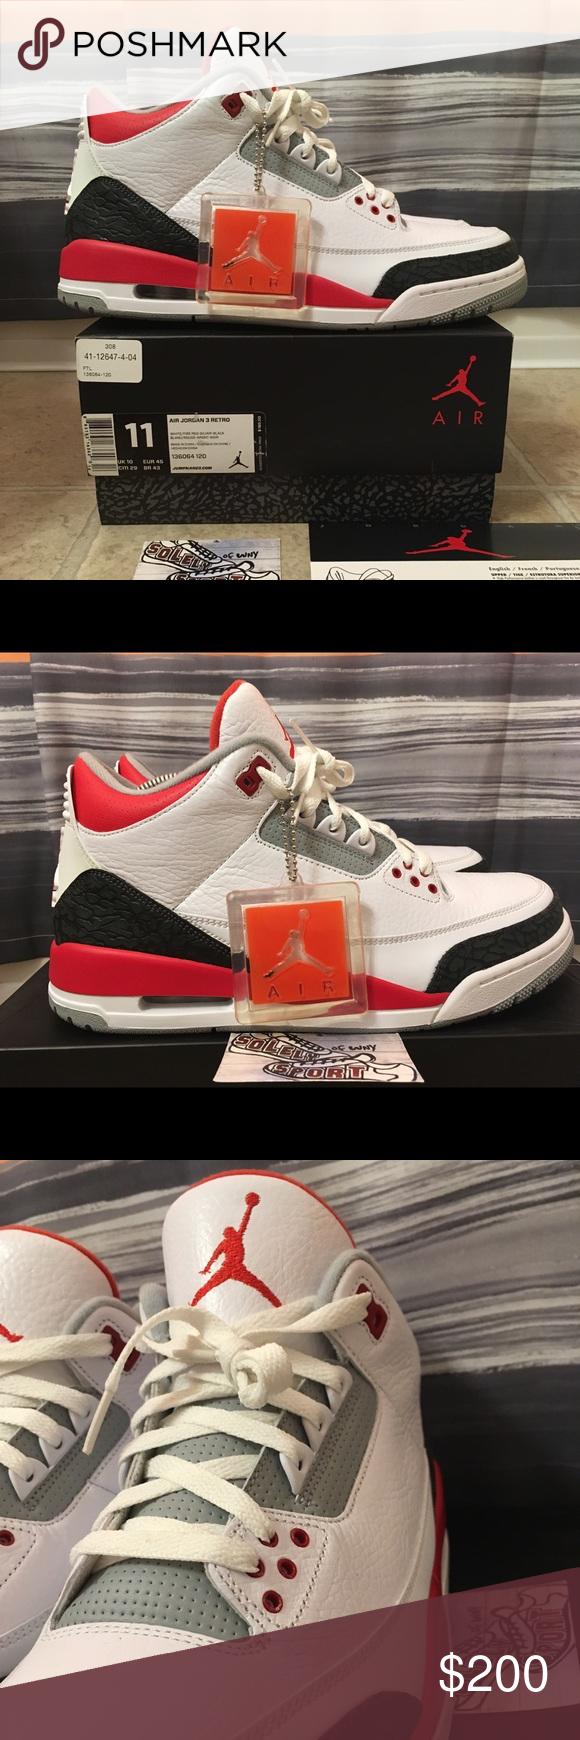 new arrival ede75 3ed38 Nike Air Jordan Retro 3 III Fire Red Mens Size 11 Brand - Jordan Style - Retro  3 Color - Fire Red Size - 11 Condition - VNDS. Only worn 1 time!!